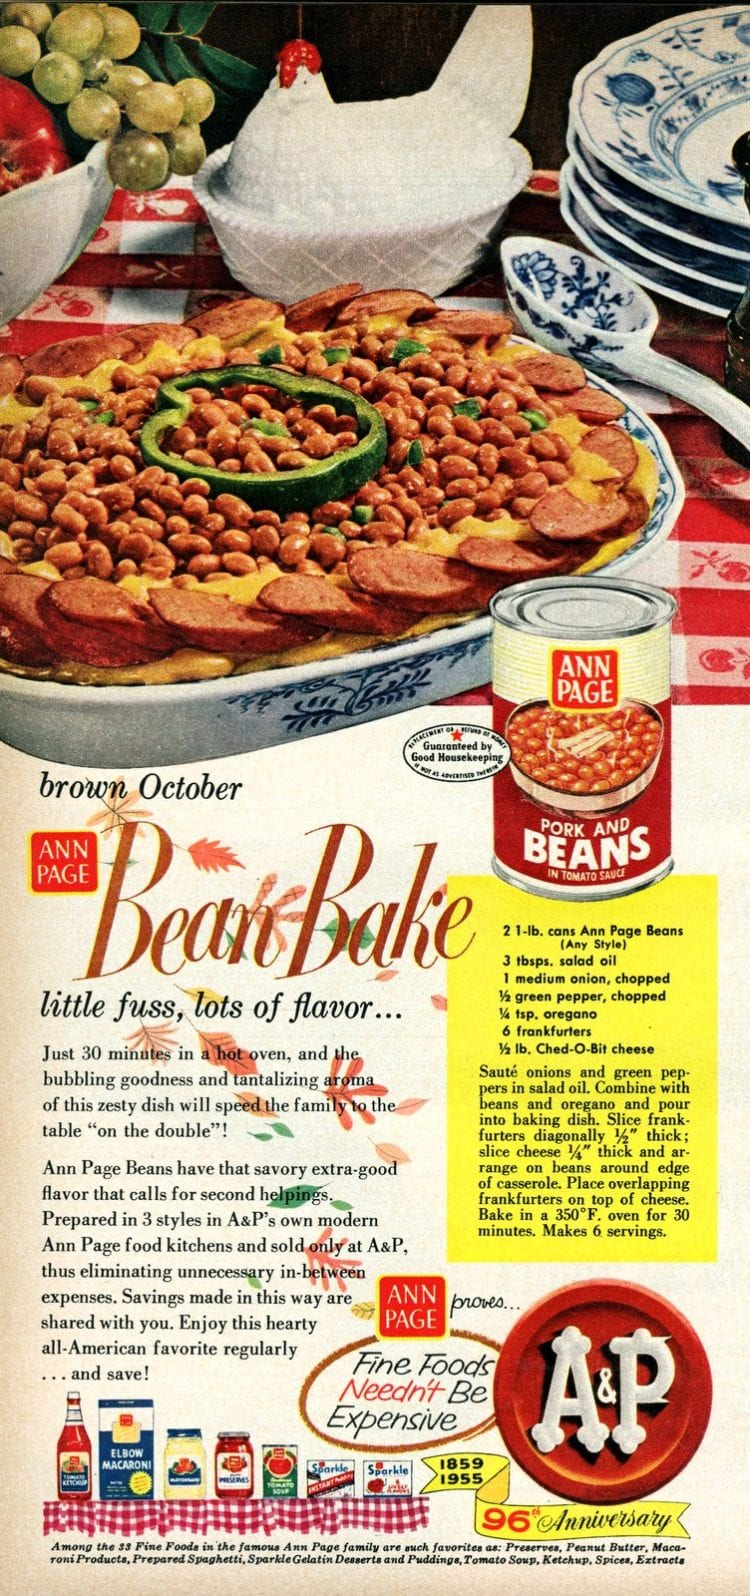 Ann Page zesty baked beans recipe 1955 (1)